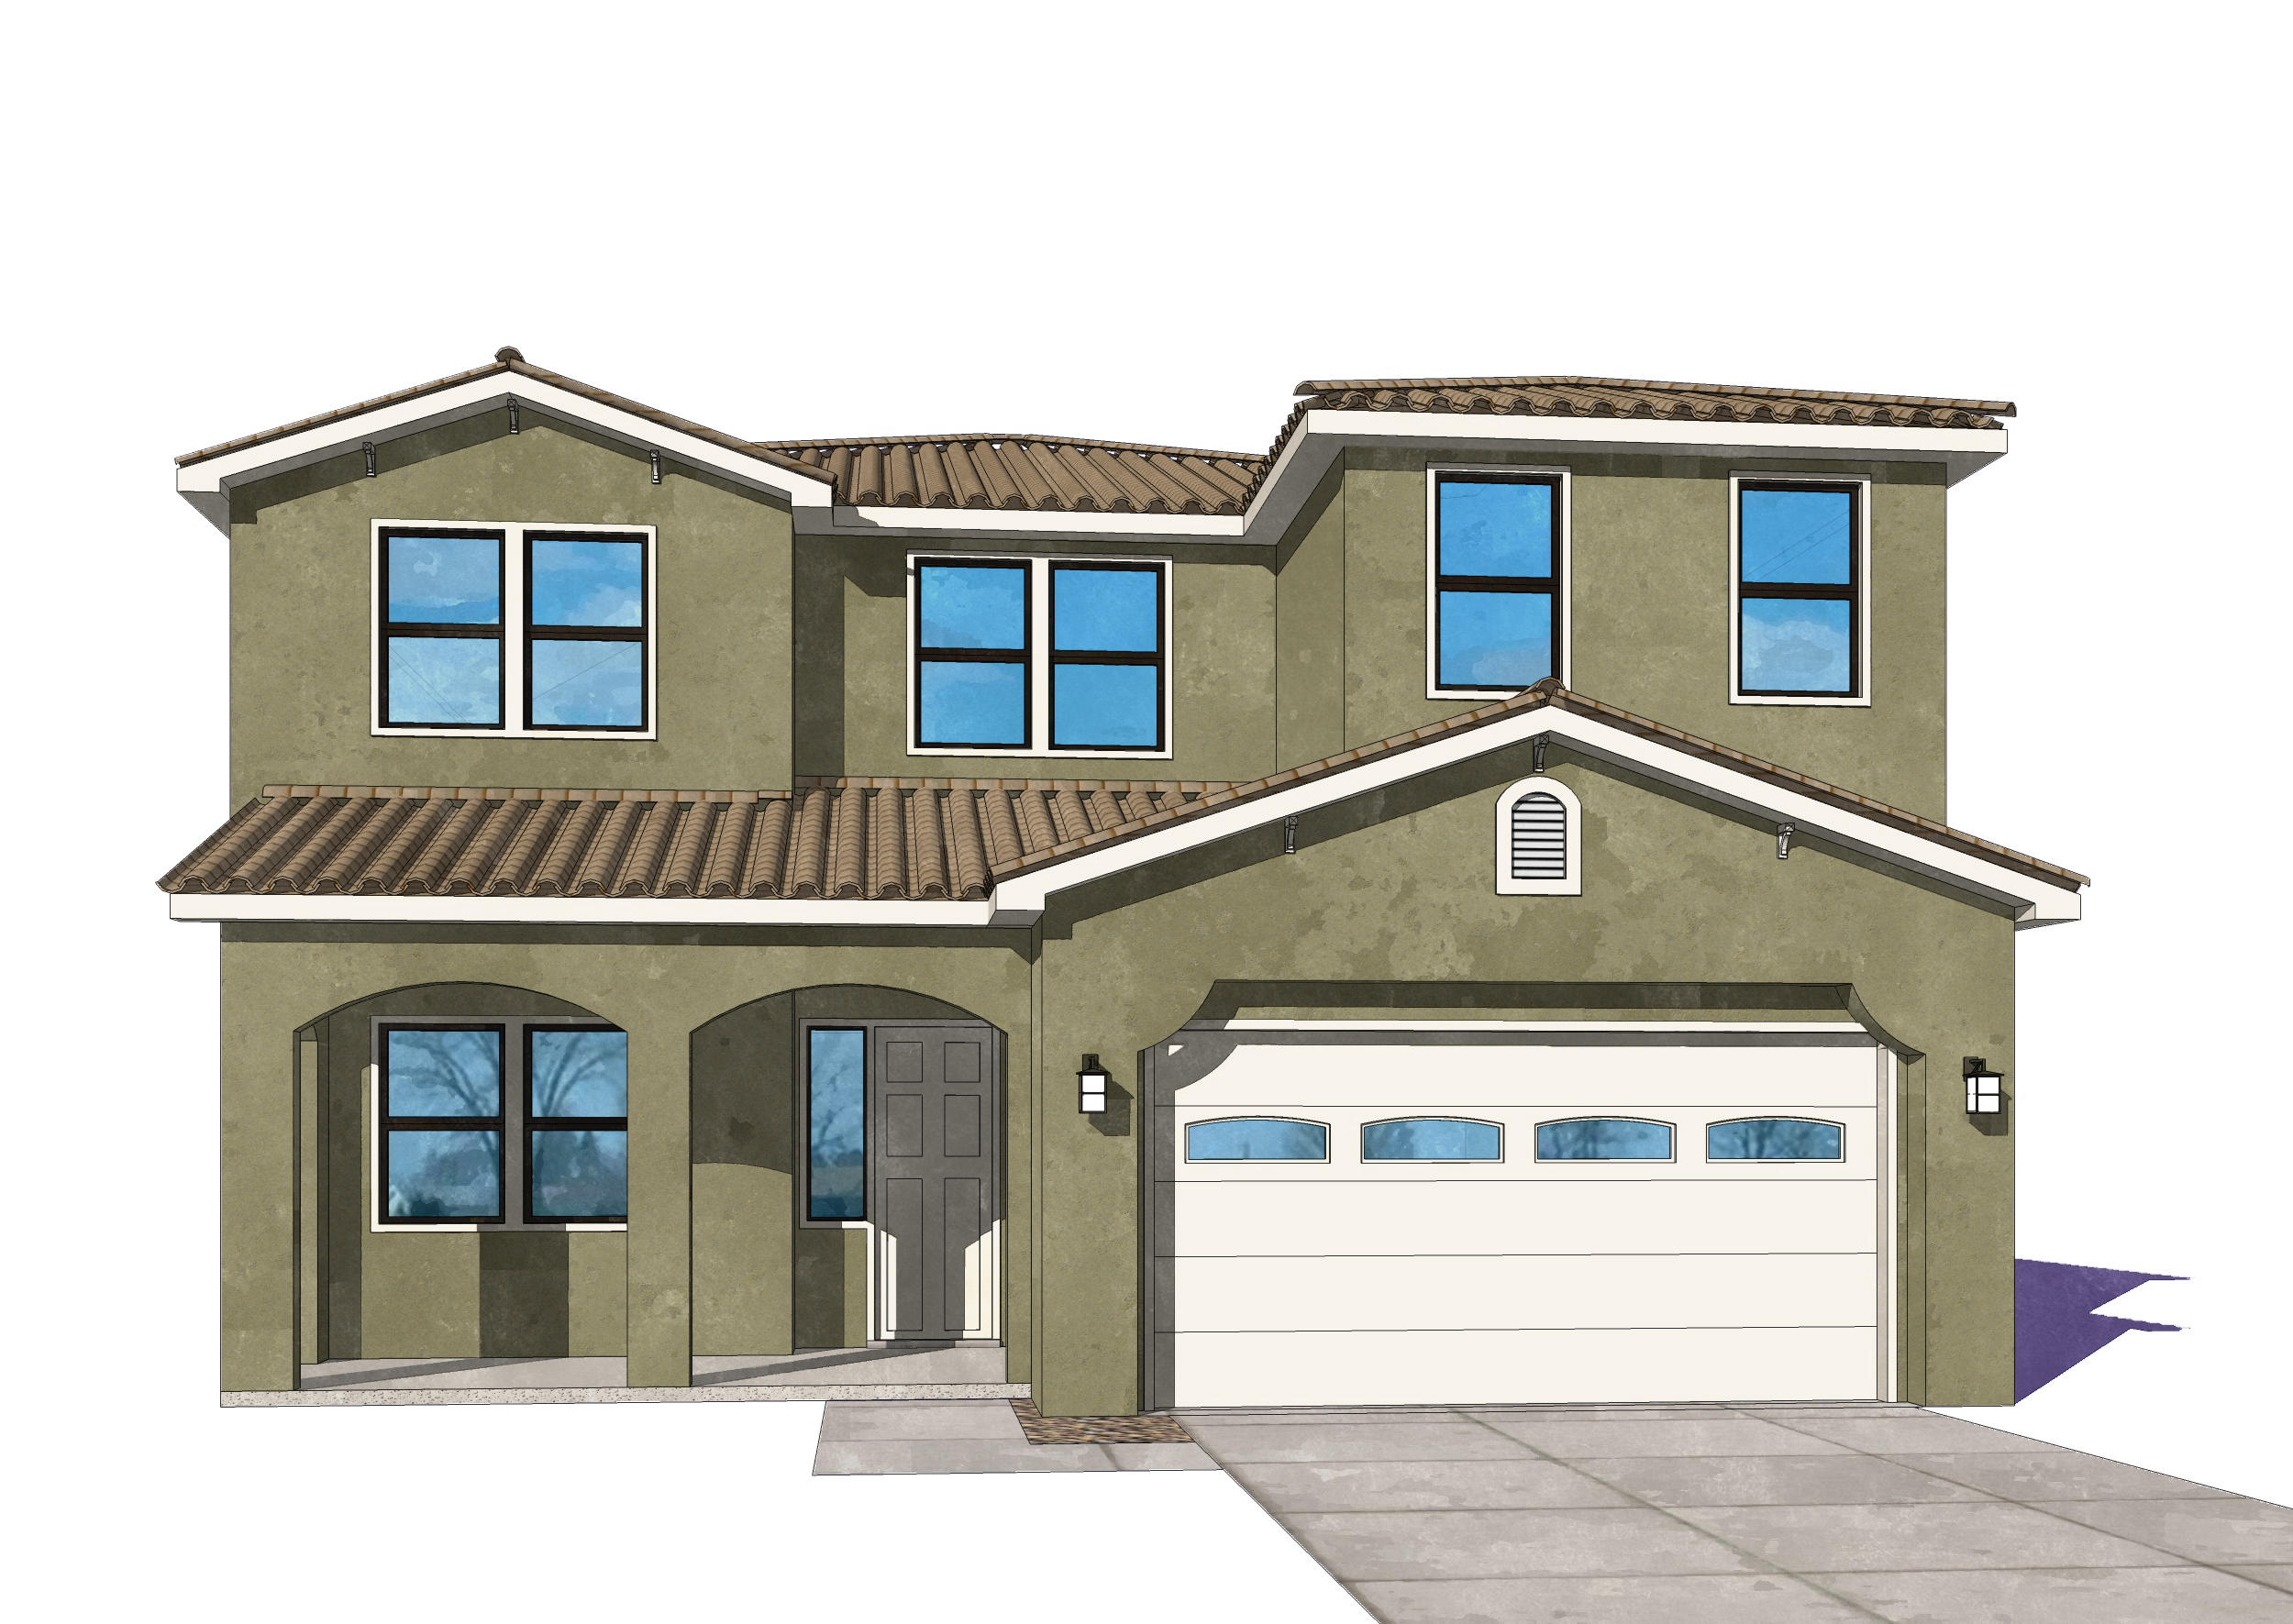 Under construction for completion in May. Pics are of model and may vary. This is a stunning home that will impress. Coffered ceilings, spacious study, enviable master suite and a huge dining, living, kitchen area. The living room has a fireplace and lovely bay windows. The dining room has oversize sliding glass doors (8' x 9') which open to a large covered patio. The features include granite countertops in all baths and kitchen, ceramic tile in kitchen, laundry and all baths. The master suite has a garden tub and tile shower with dual shower heads and rainhead, dual sinks, and a large walk in closet. Low E dual paned windows, tankless water heater, 13 SEER, and other energy efficient features. A full Samsung stainless steel SxS refrig,micro,DW, range and in white, a washer and dryer.